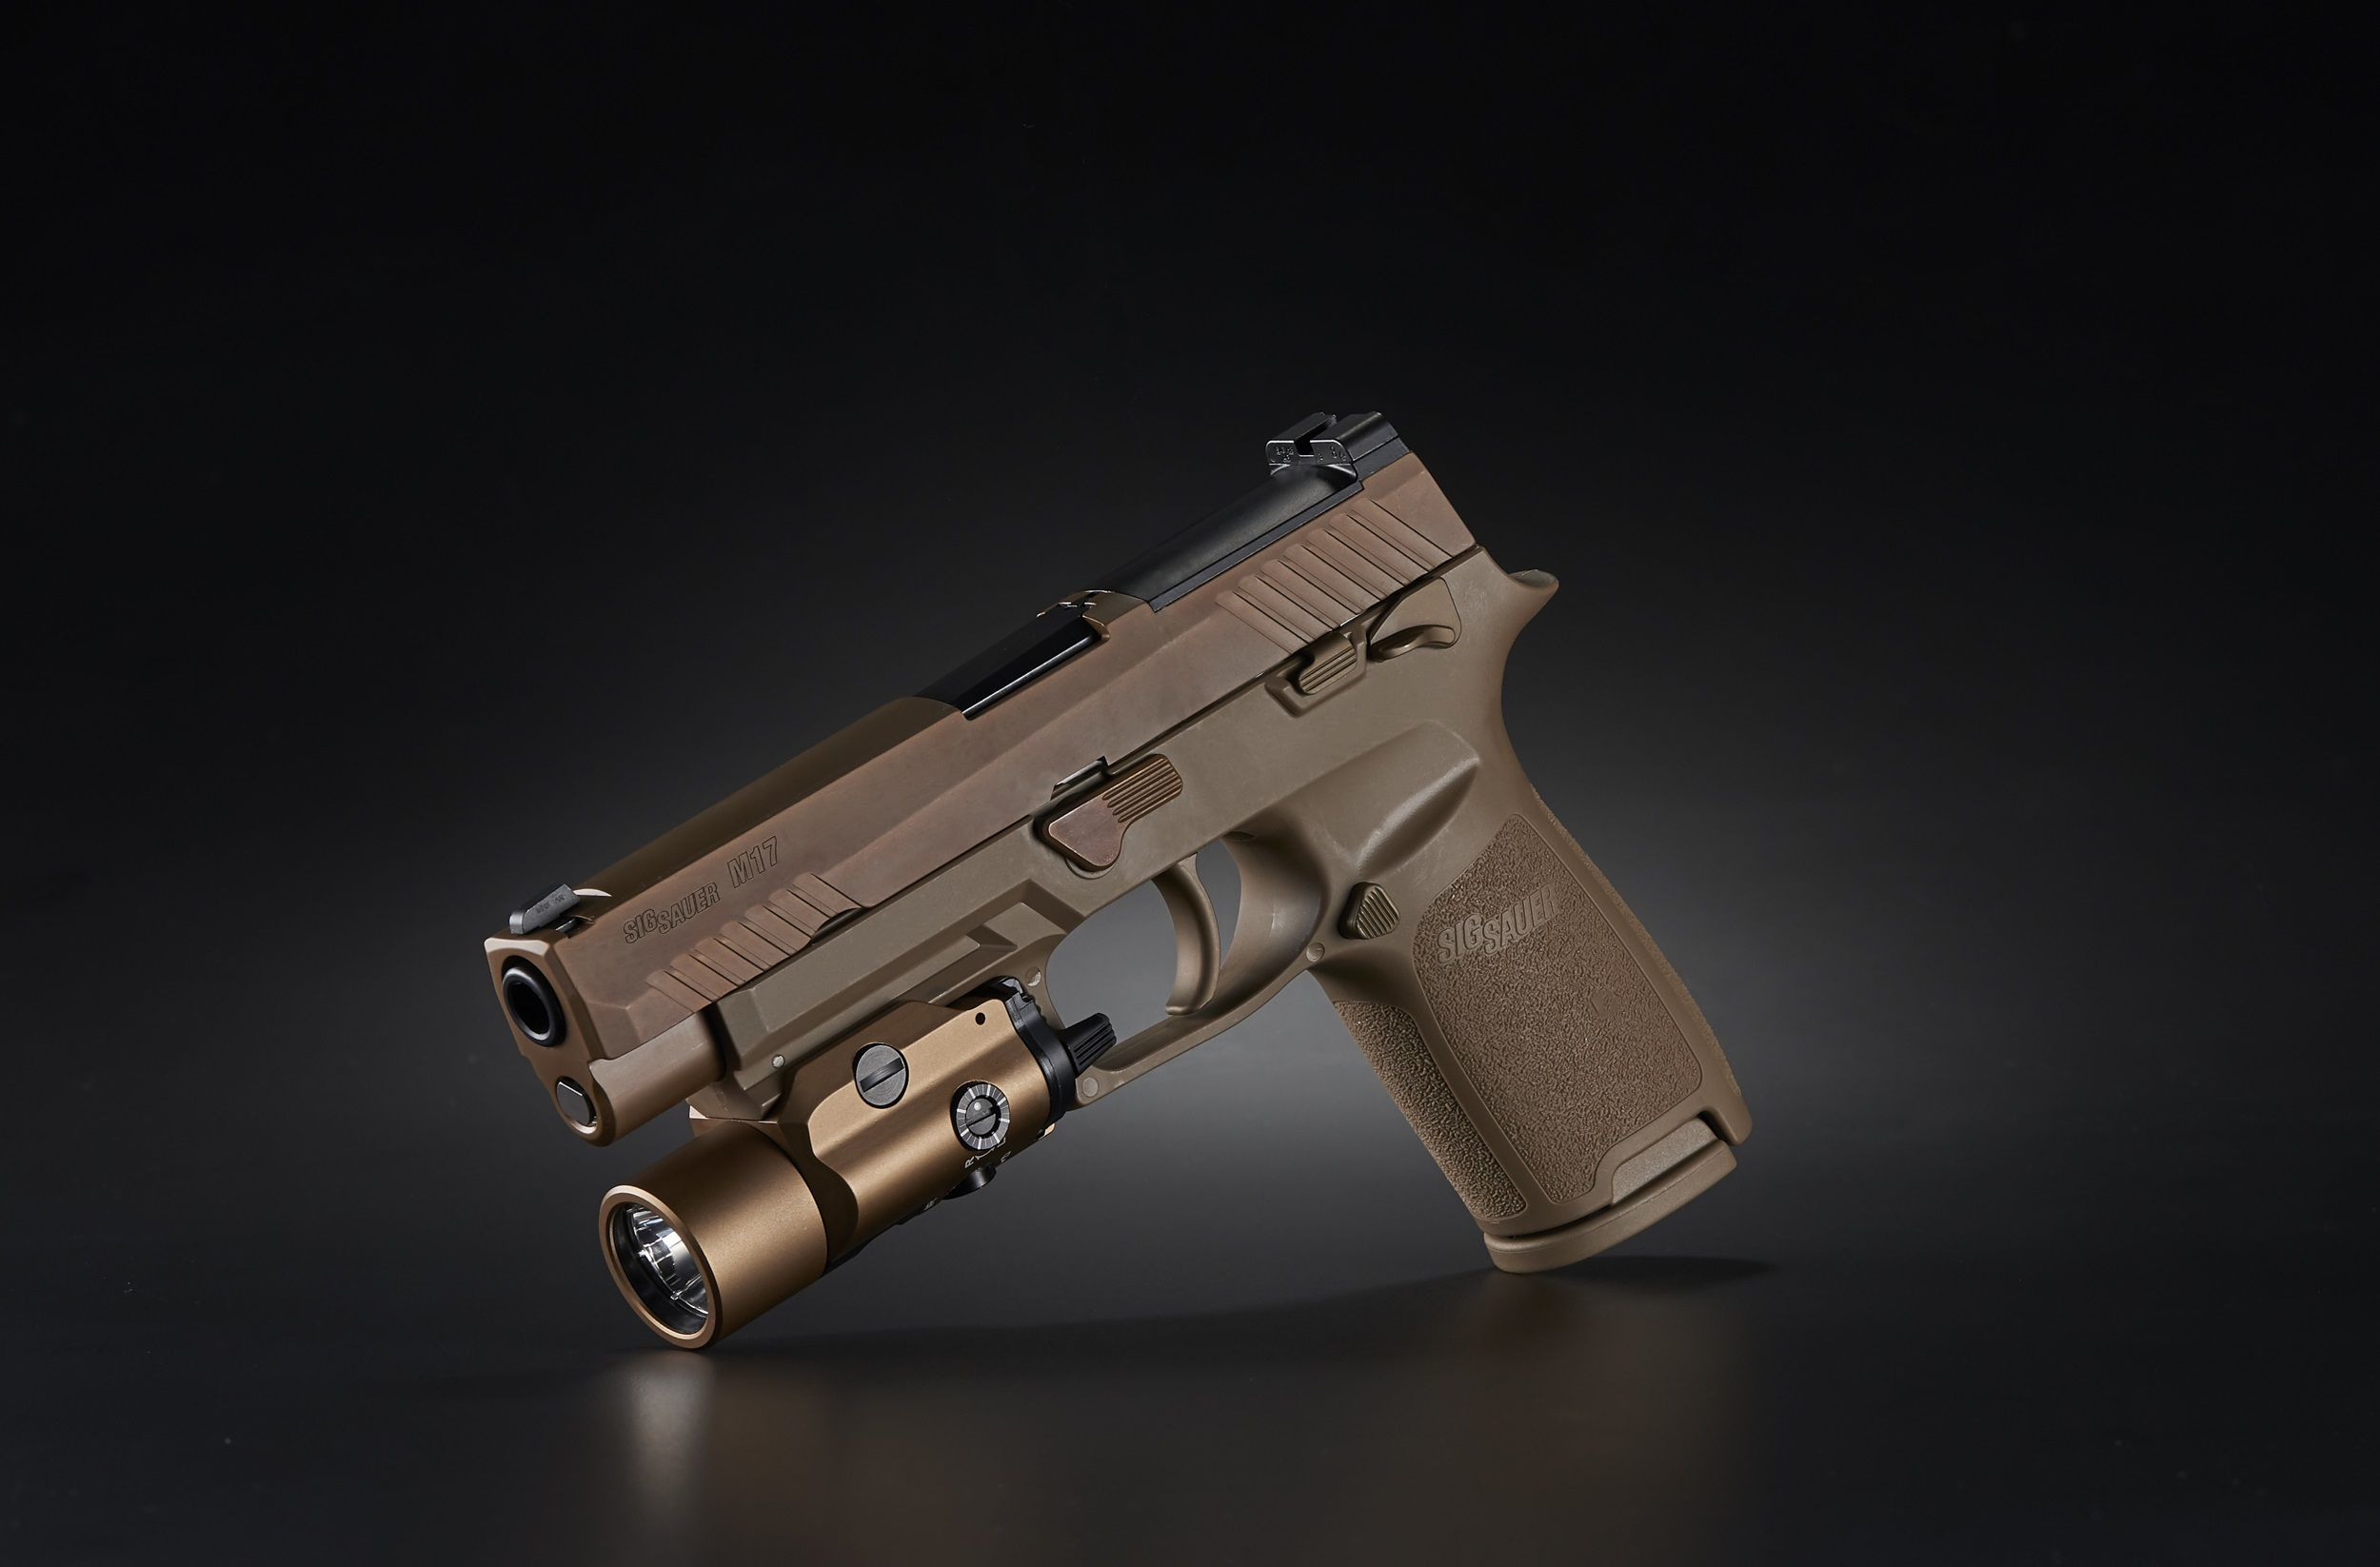 The TLR-VIR II enables users to easily toggle easily between bright light and the IR illuminator/laser. This feature allows military and law enforcement personnel to remain in a proper firing position when making the transition from IR mode to white light, and vice versa. The light features a three-position mode rear selector switch, including IR illumination/IR laser, Safe Off (to prevent accidental turn-on), and visible illumination, that enables users to keep hands away from the muzzle during mode selection.